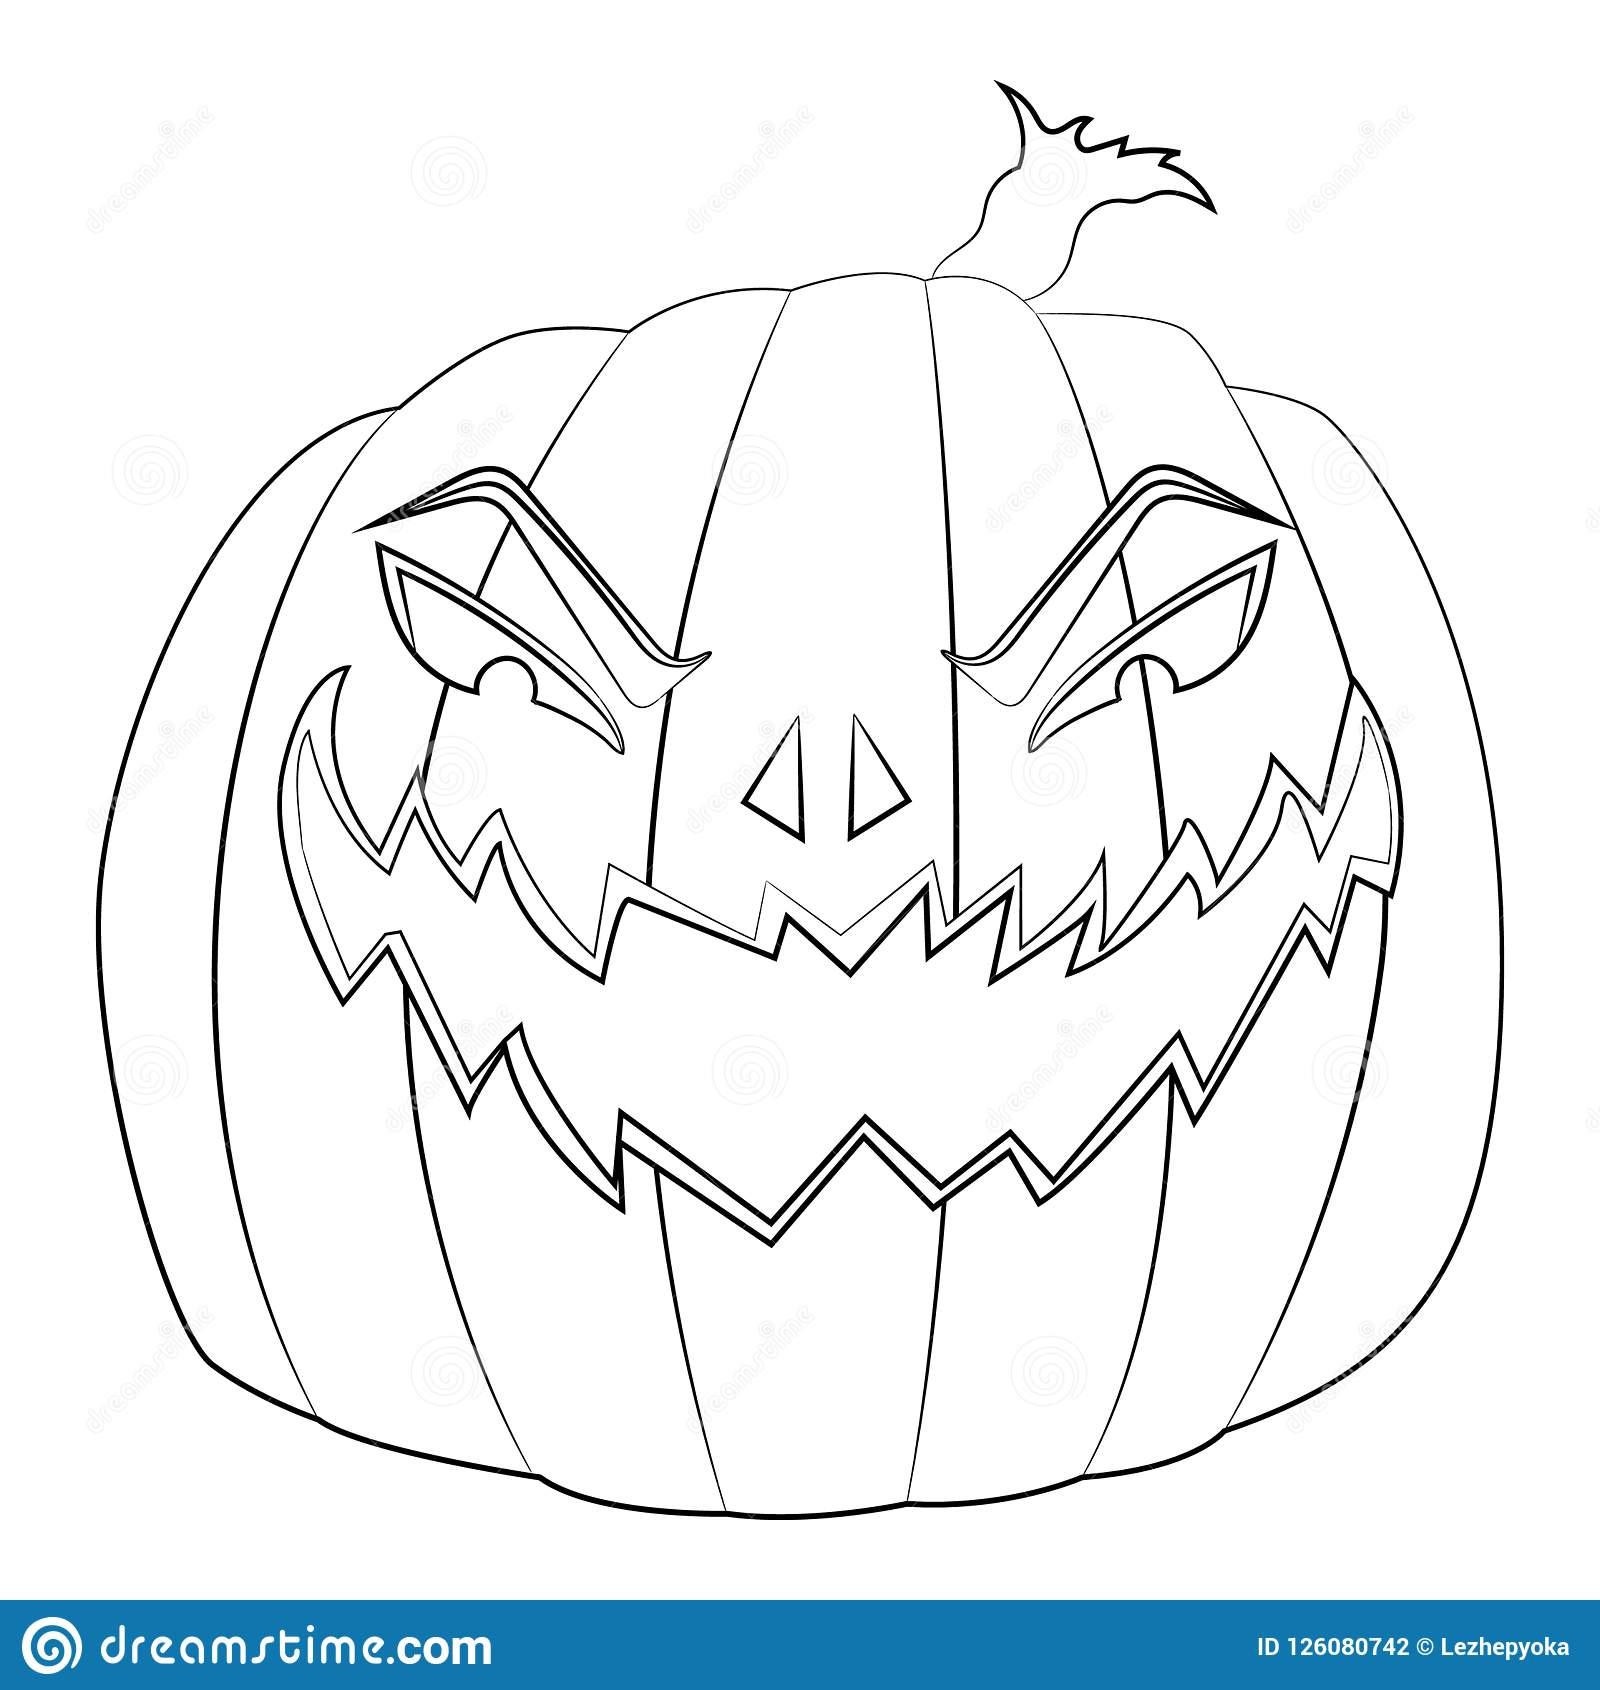 Coloring Page For Kids With Halloween Evil Pumpkin Stock Vector